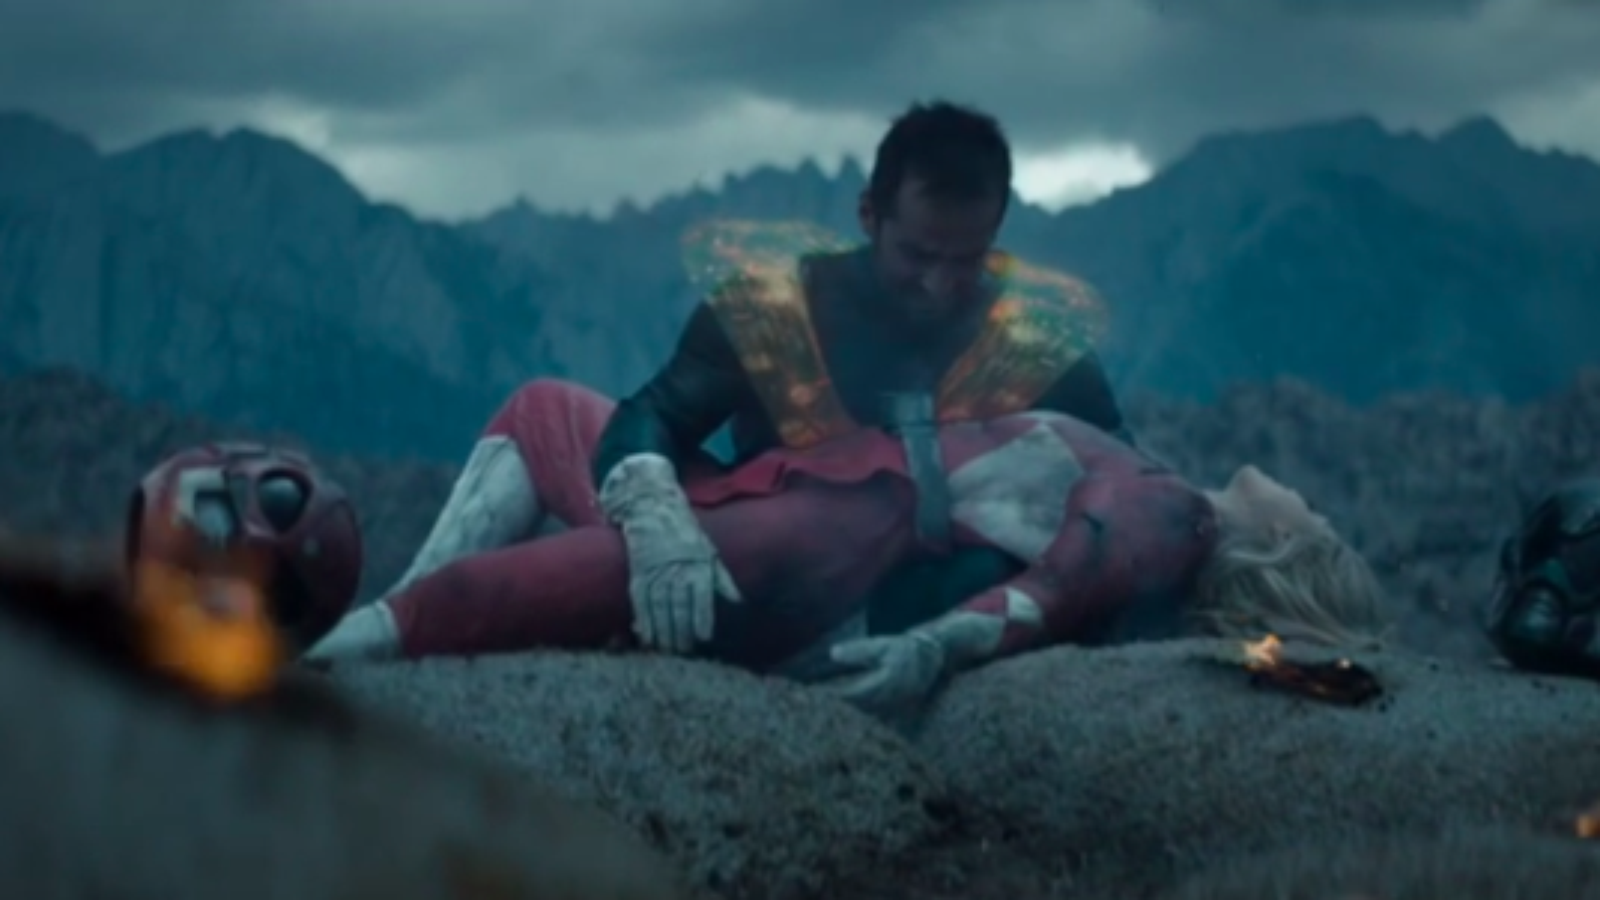 This Insane Power Rangers Remake Is Incredibly Brutal Screenshot 2015 02 24 09.49.39.0.0